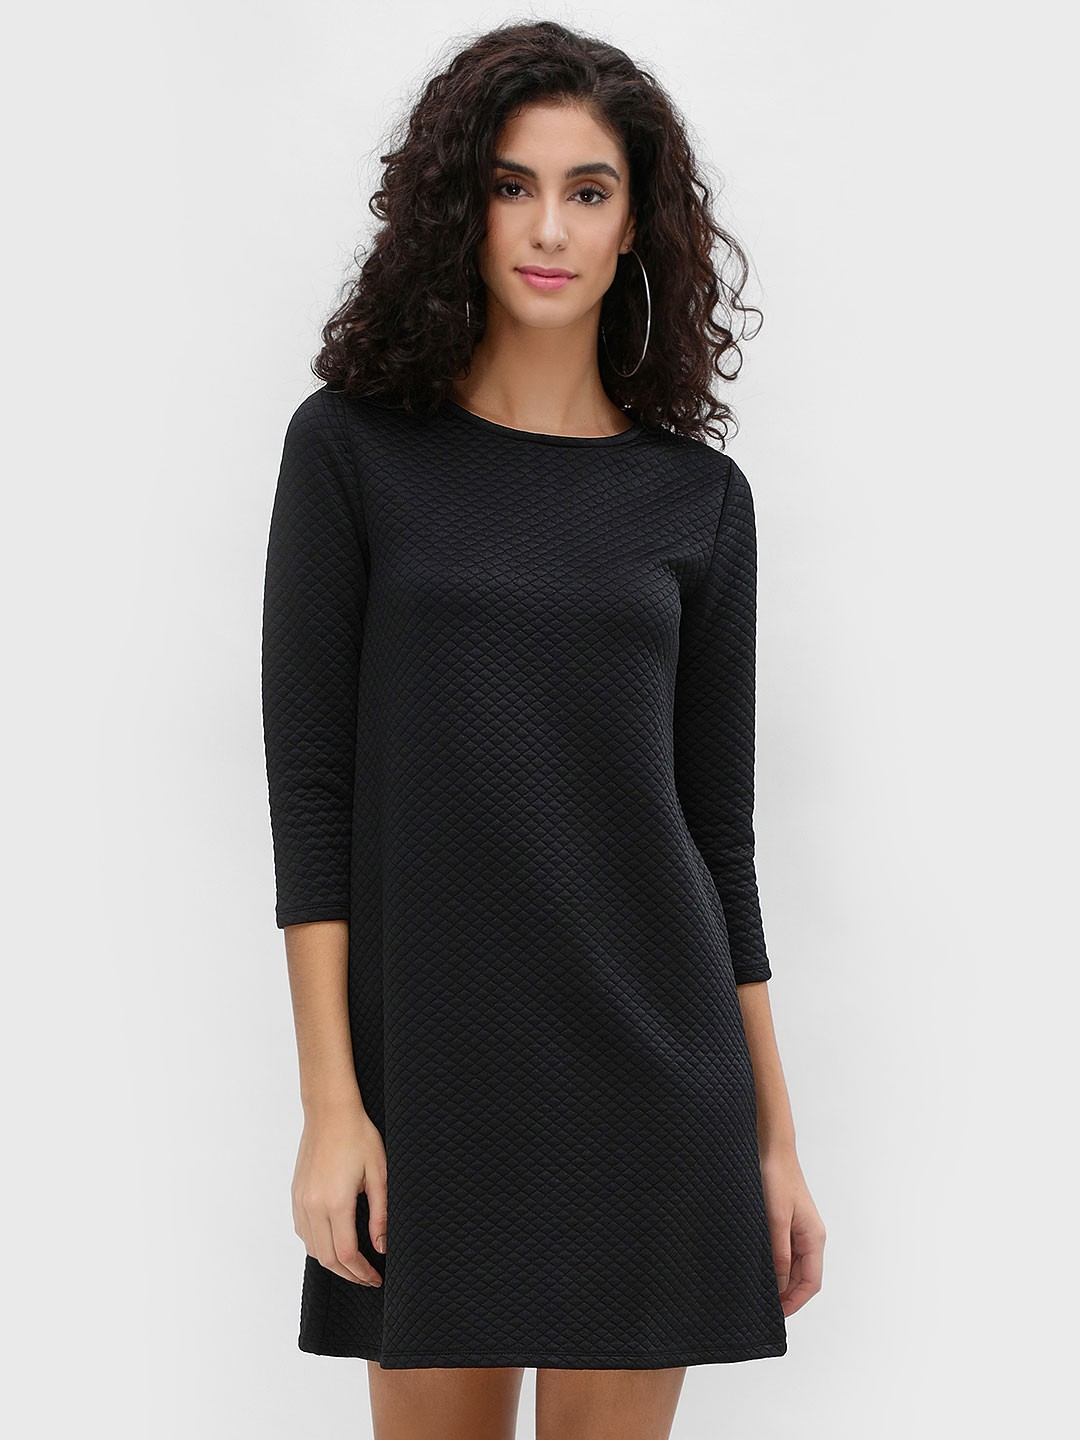 Femella Black Quilted Shift Dress 1